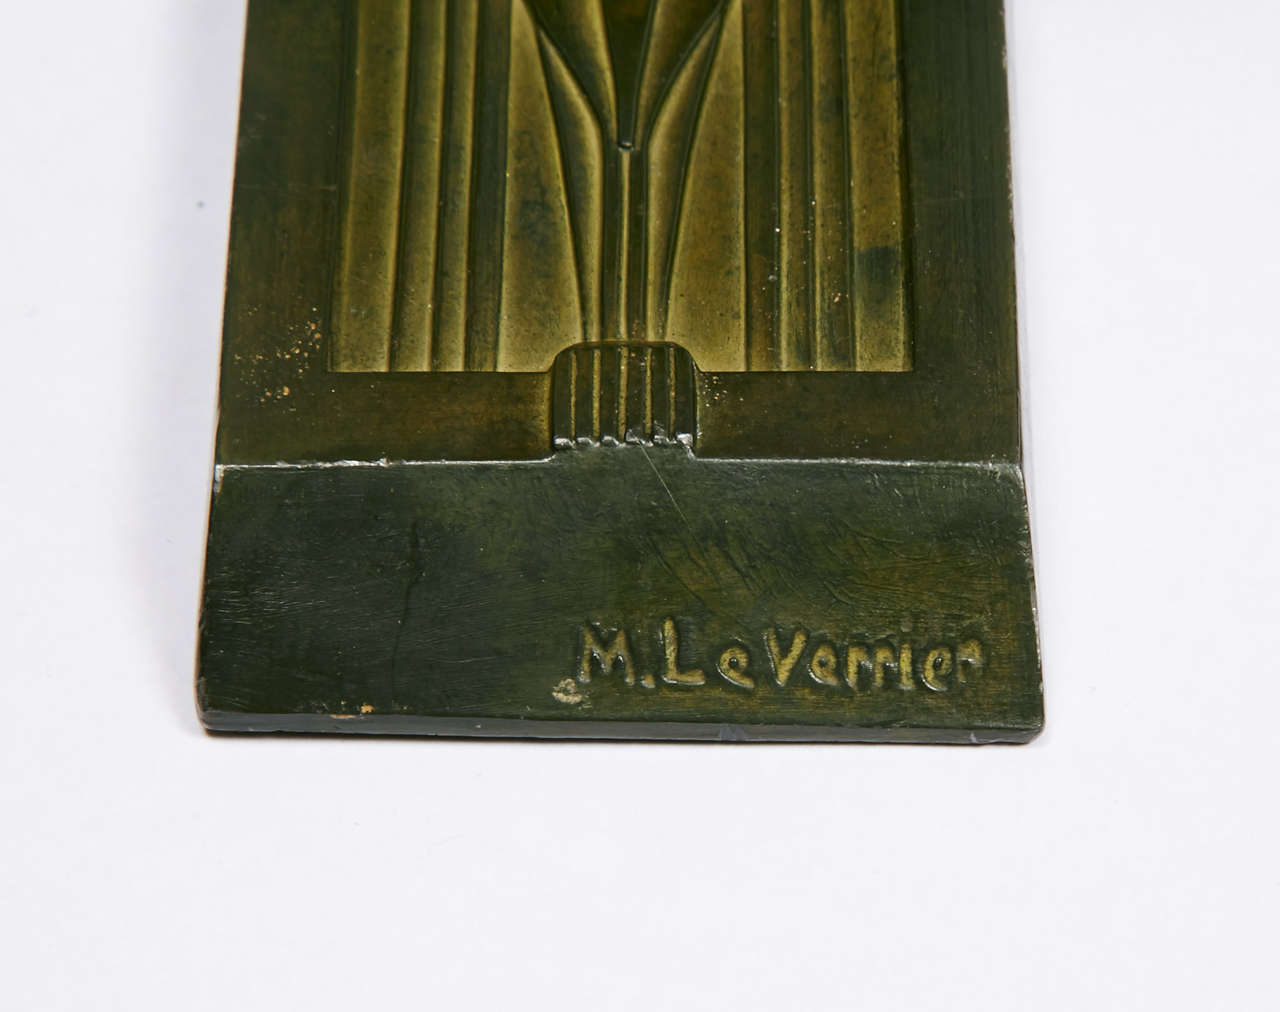 French Art Deco Sconces Signed by Max Le Verrier, circa 1920-1930 In Good Condition For Sale In Paris, FR